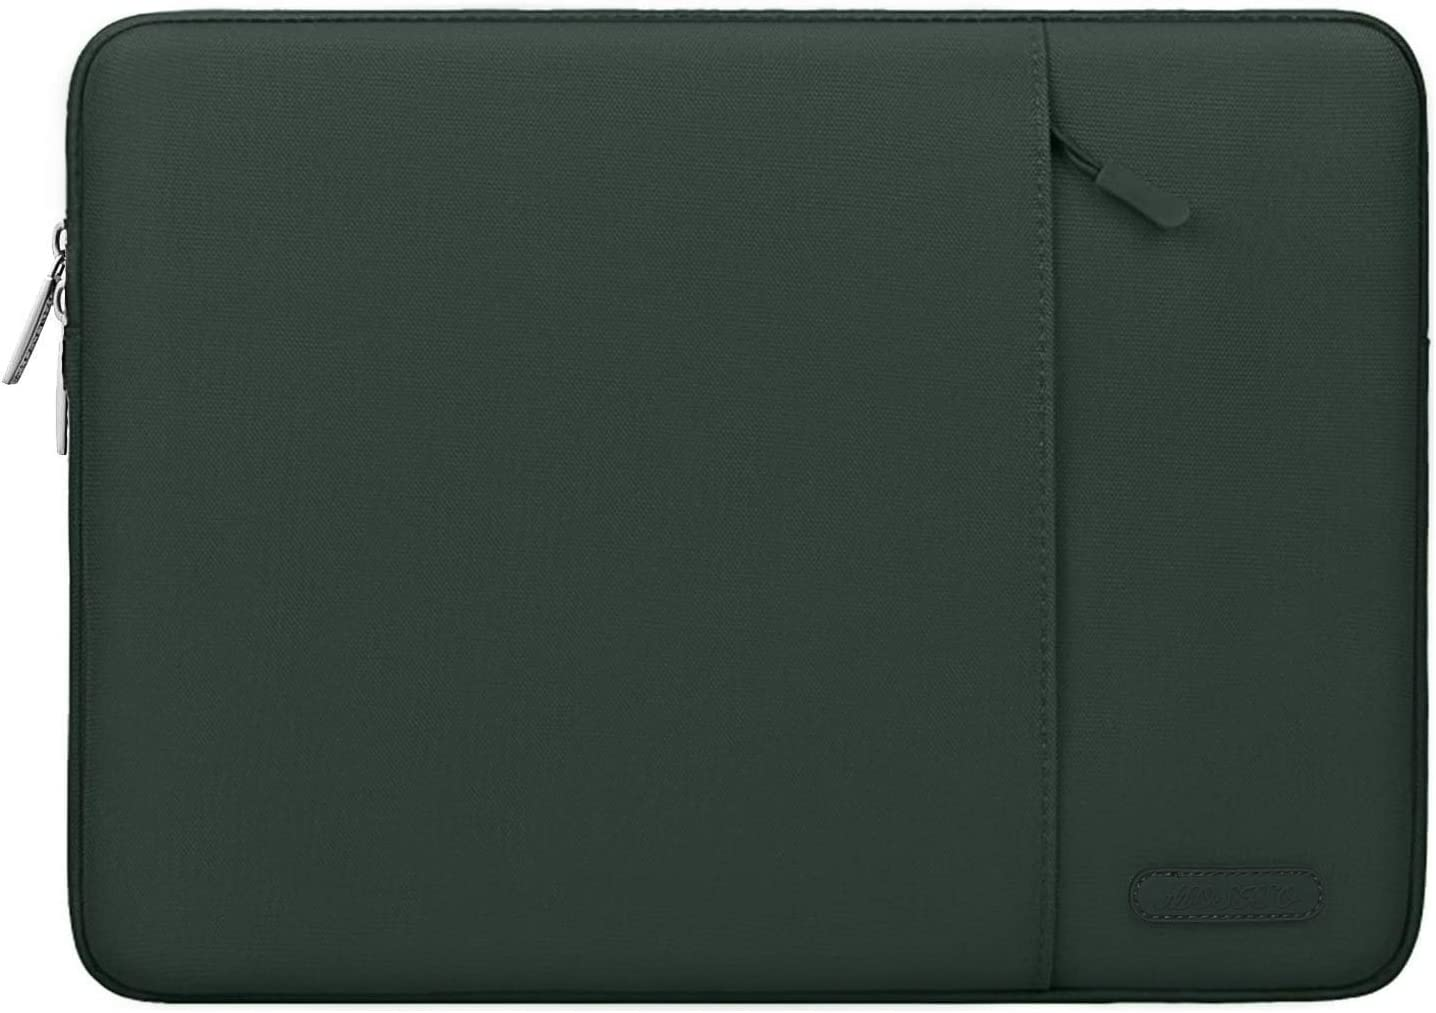 MOSISO Laptop Sleeve Bag Compatible with 13-13.3 inch MacBook Pro, MacBook Air, Notebook Computer, Water Repellent Polyester Vertical Protective Case Cover with Pocket, Midnight Green